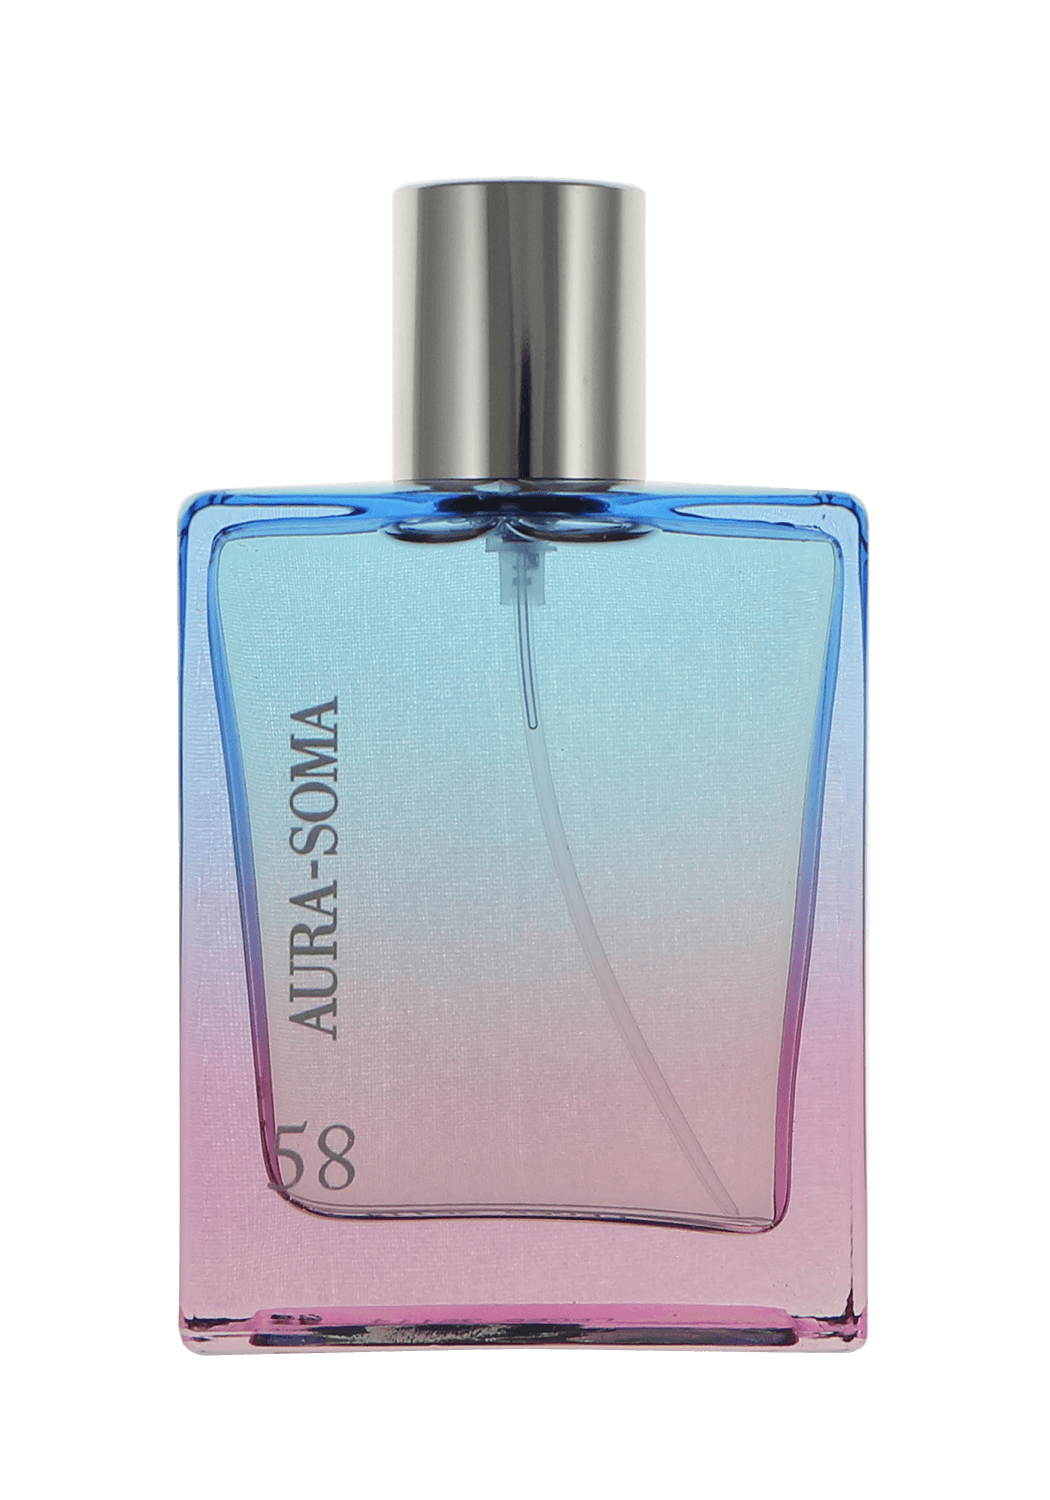 Aura-Soma Parfüm 58 Aquatic Flowers 50 ml